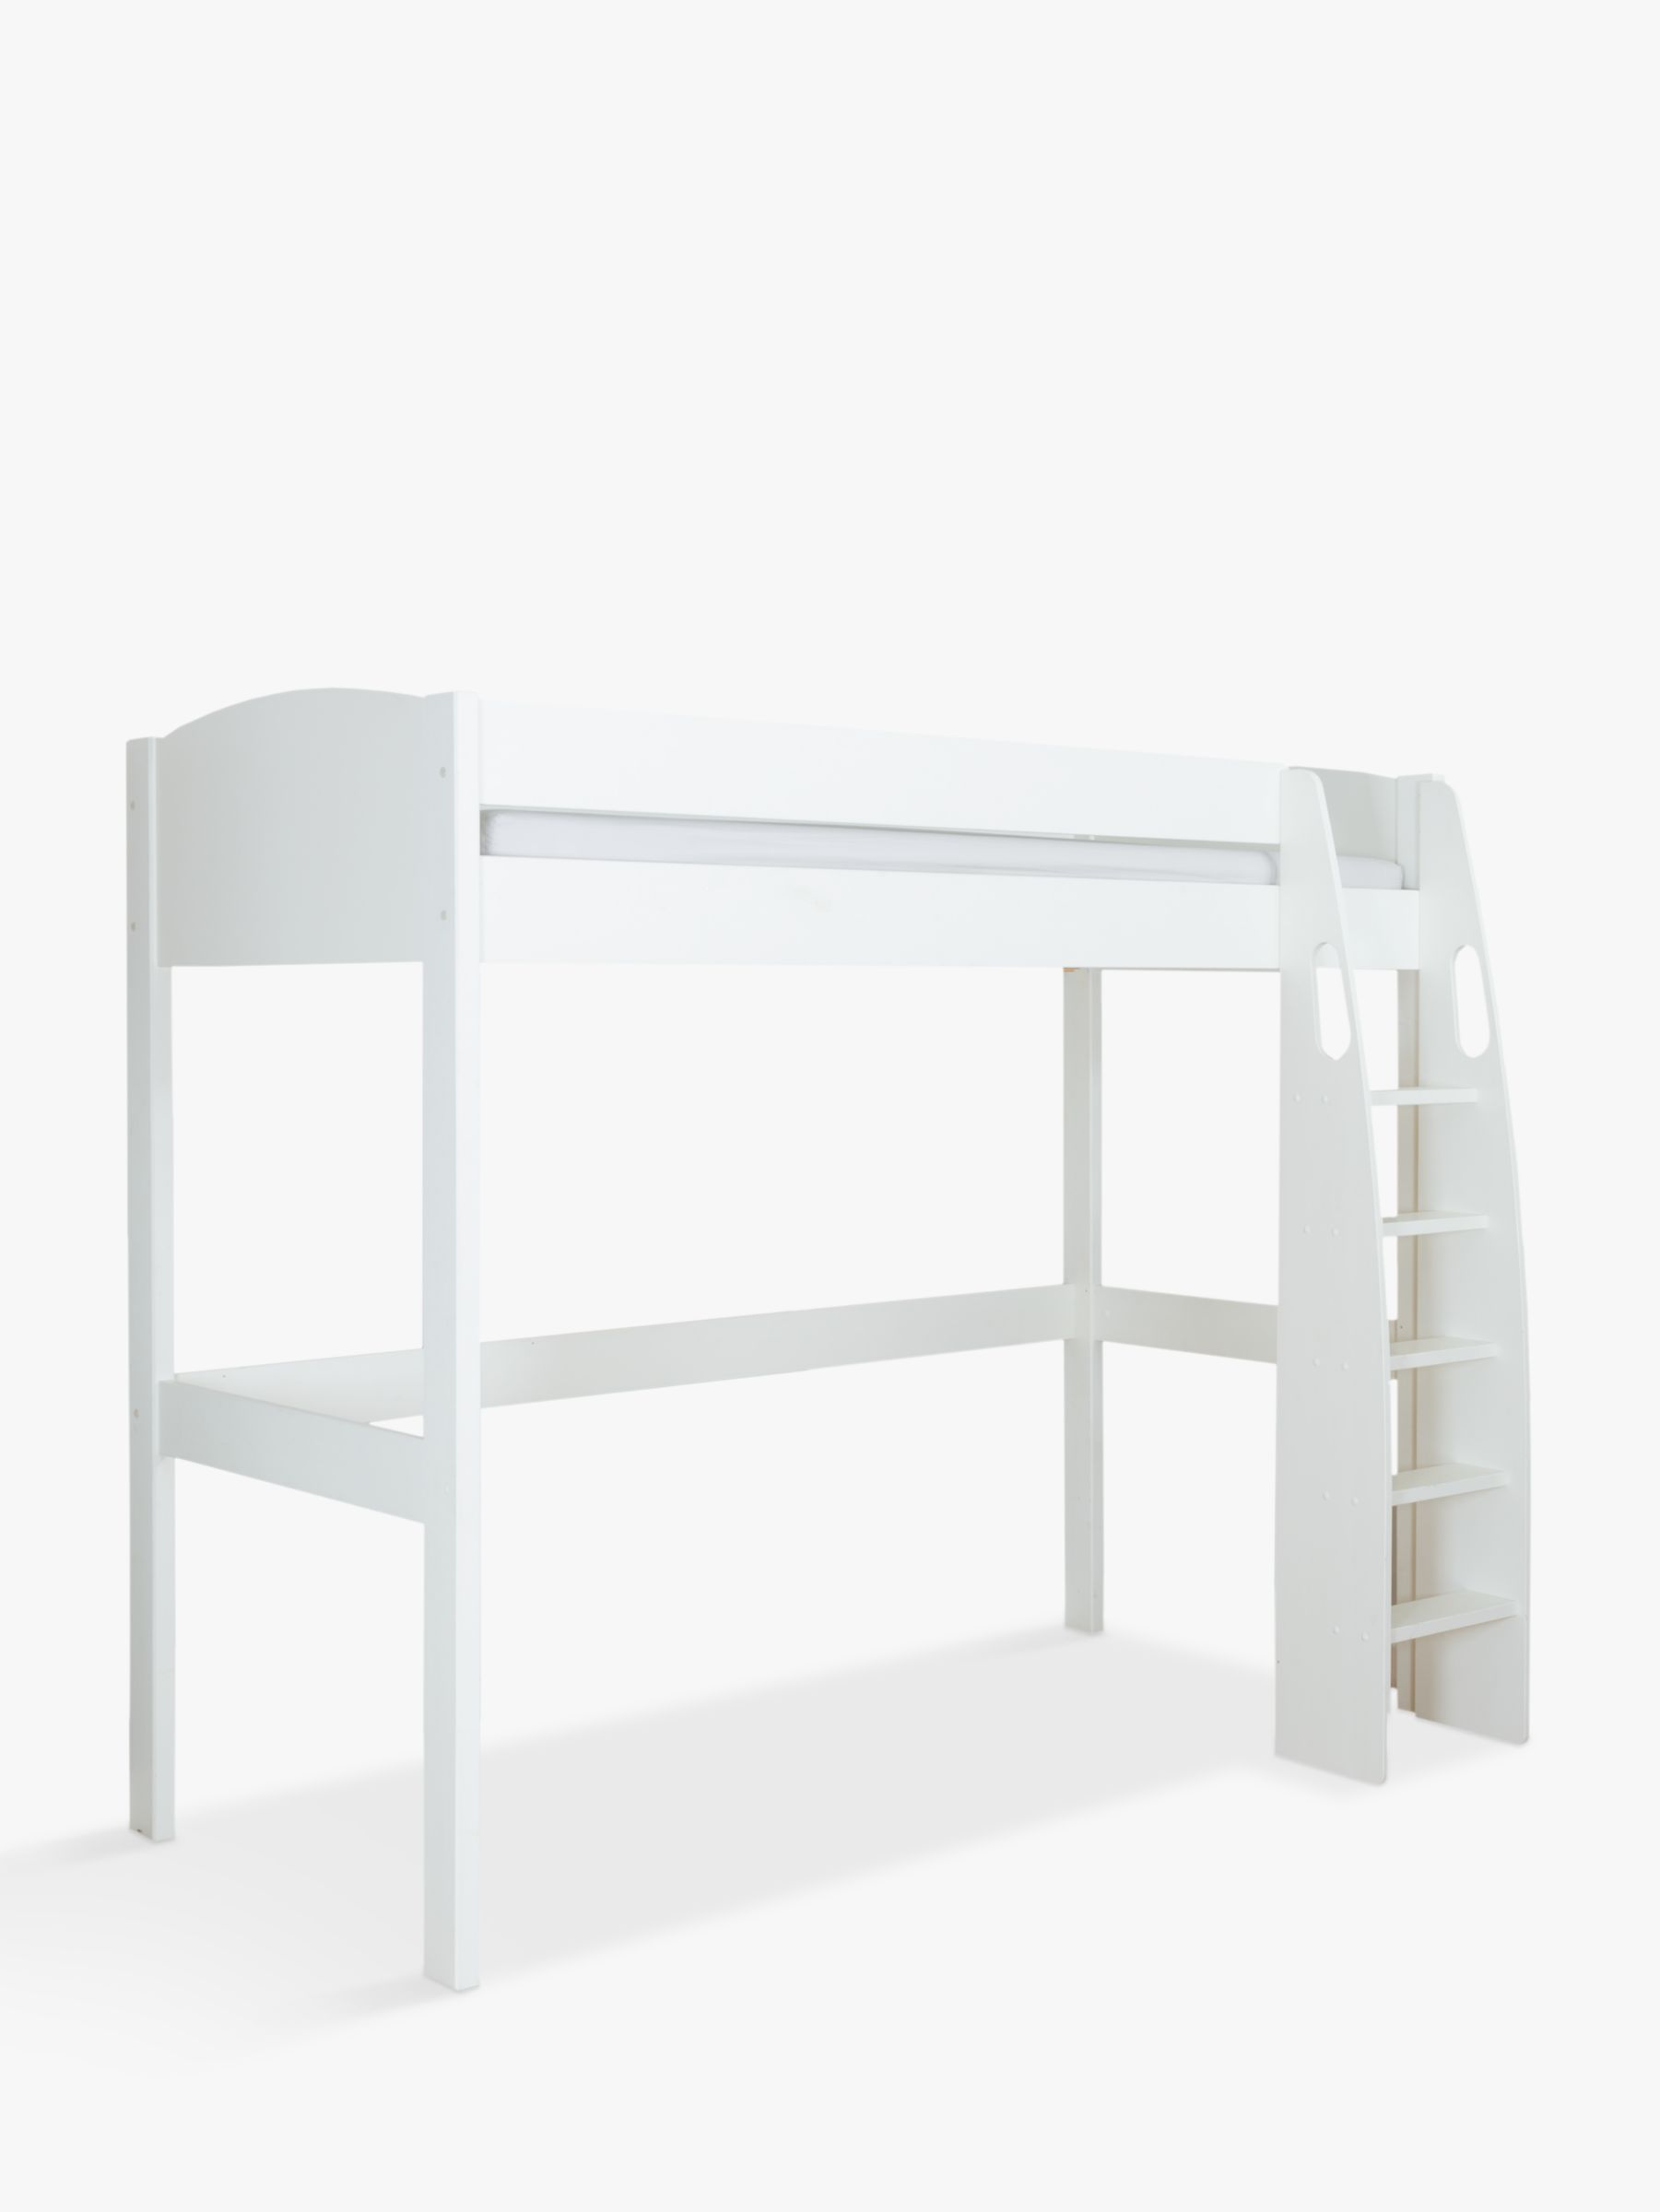 Stompa Stompa Uno S Plus High-Sleeper Bed Frame